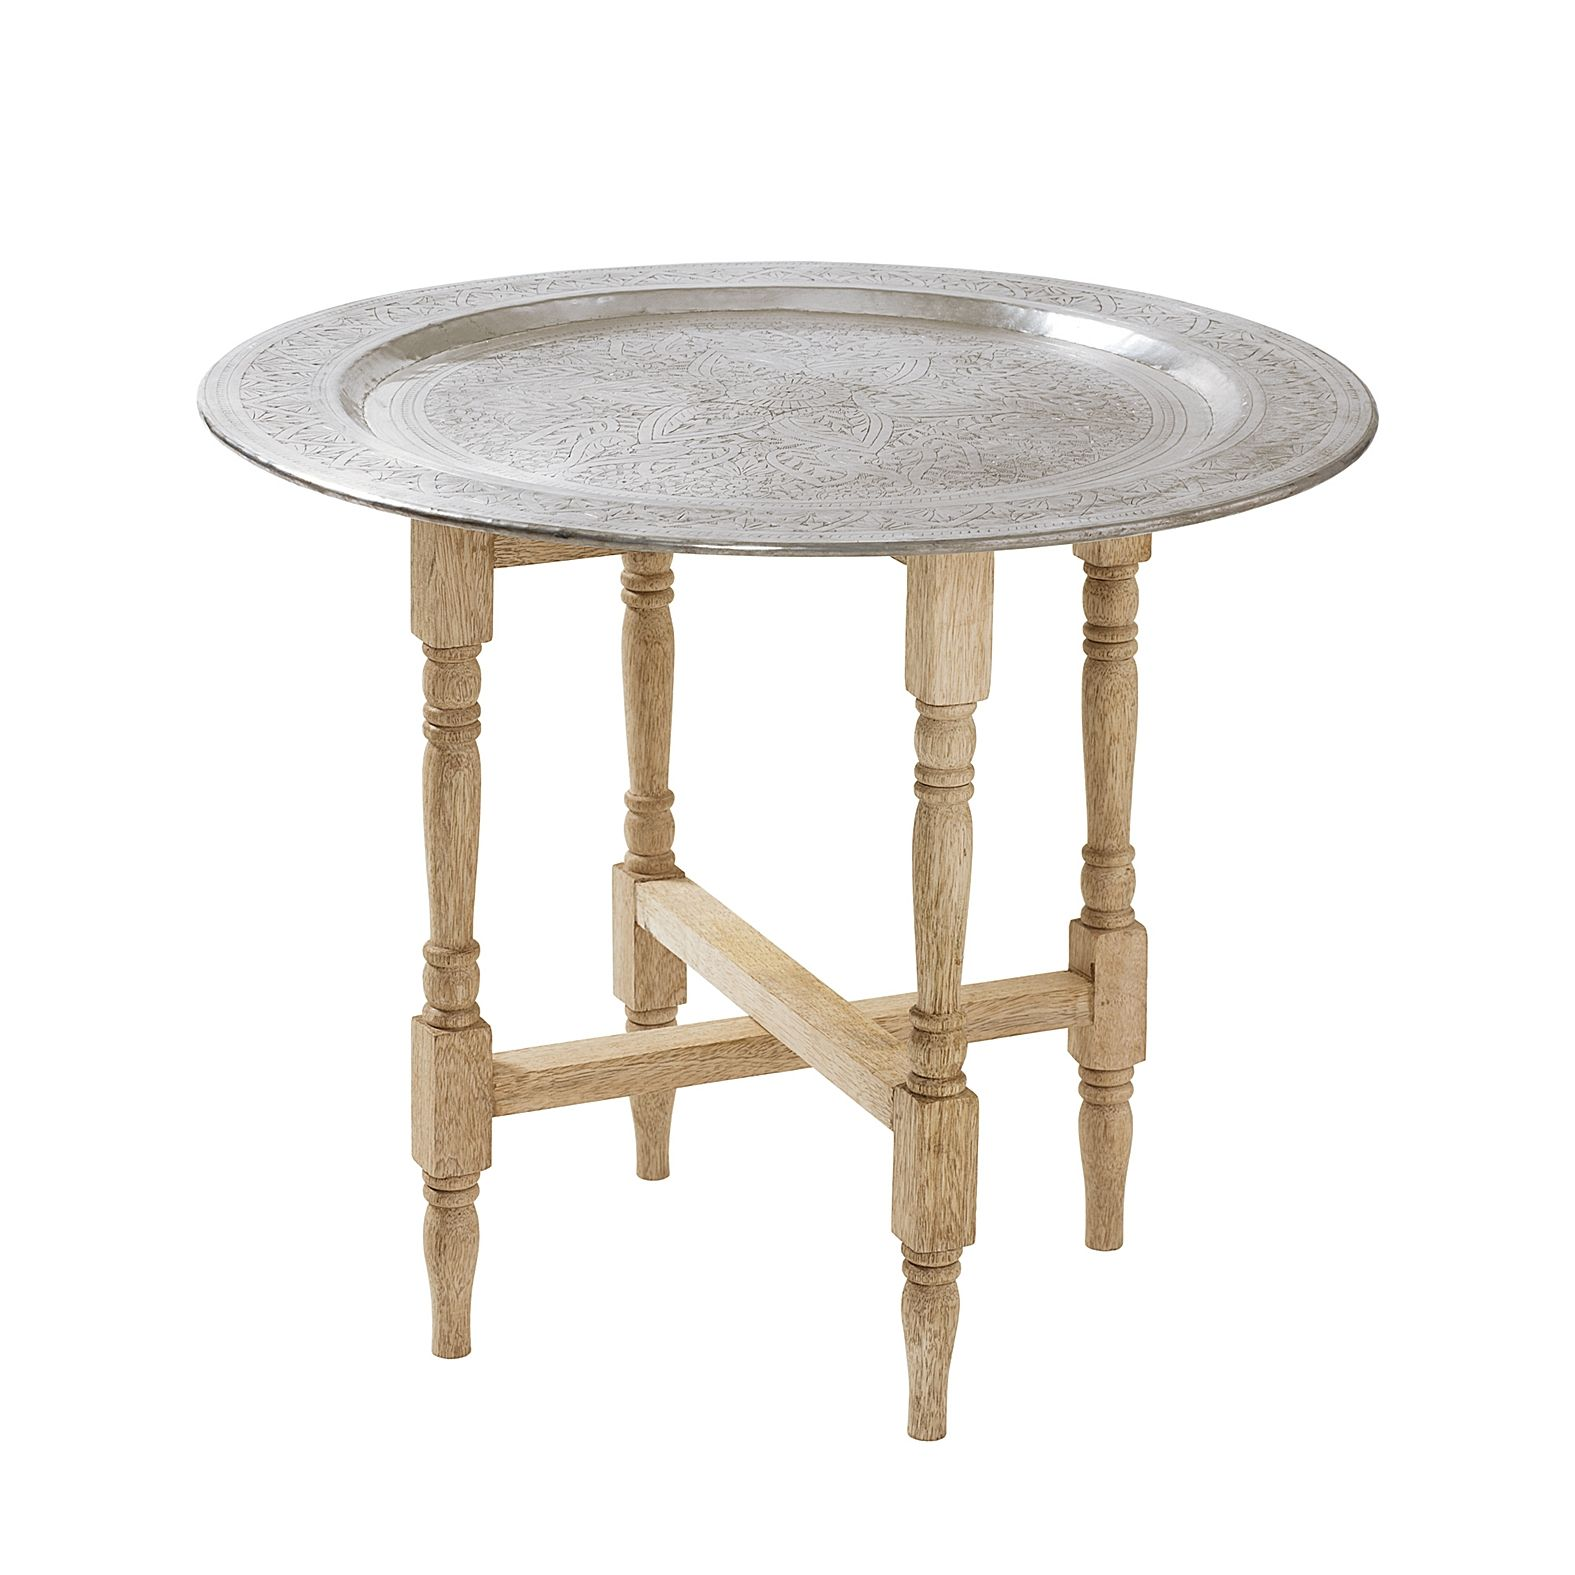 Hammered Metal Tray Table Easy to replicate w plant stand base